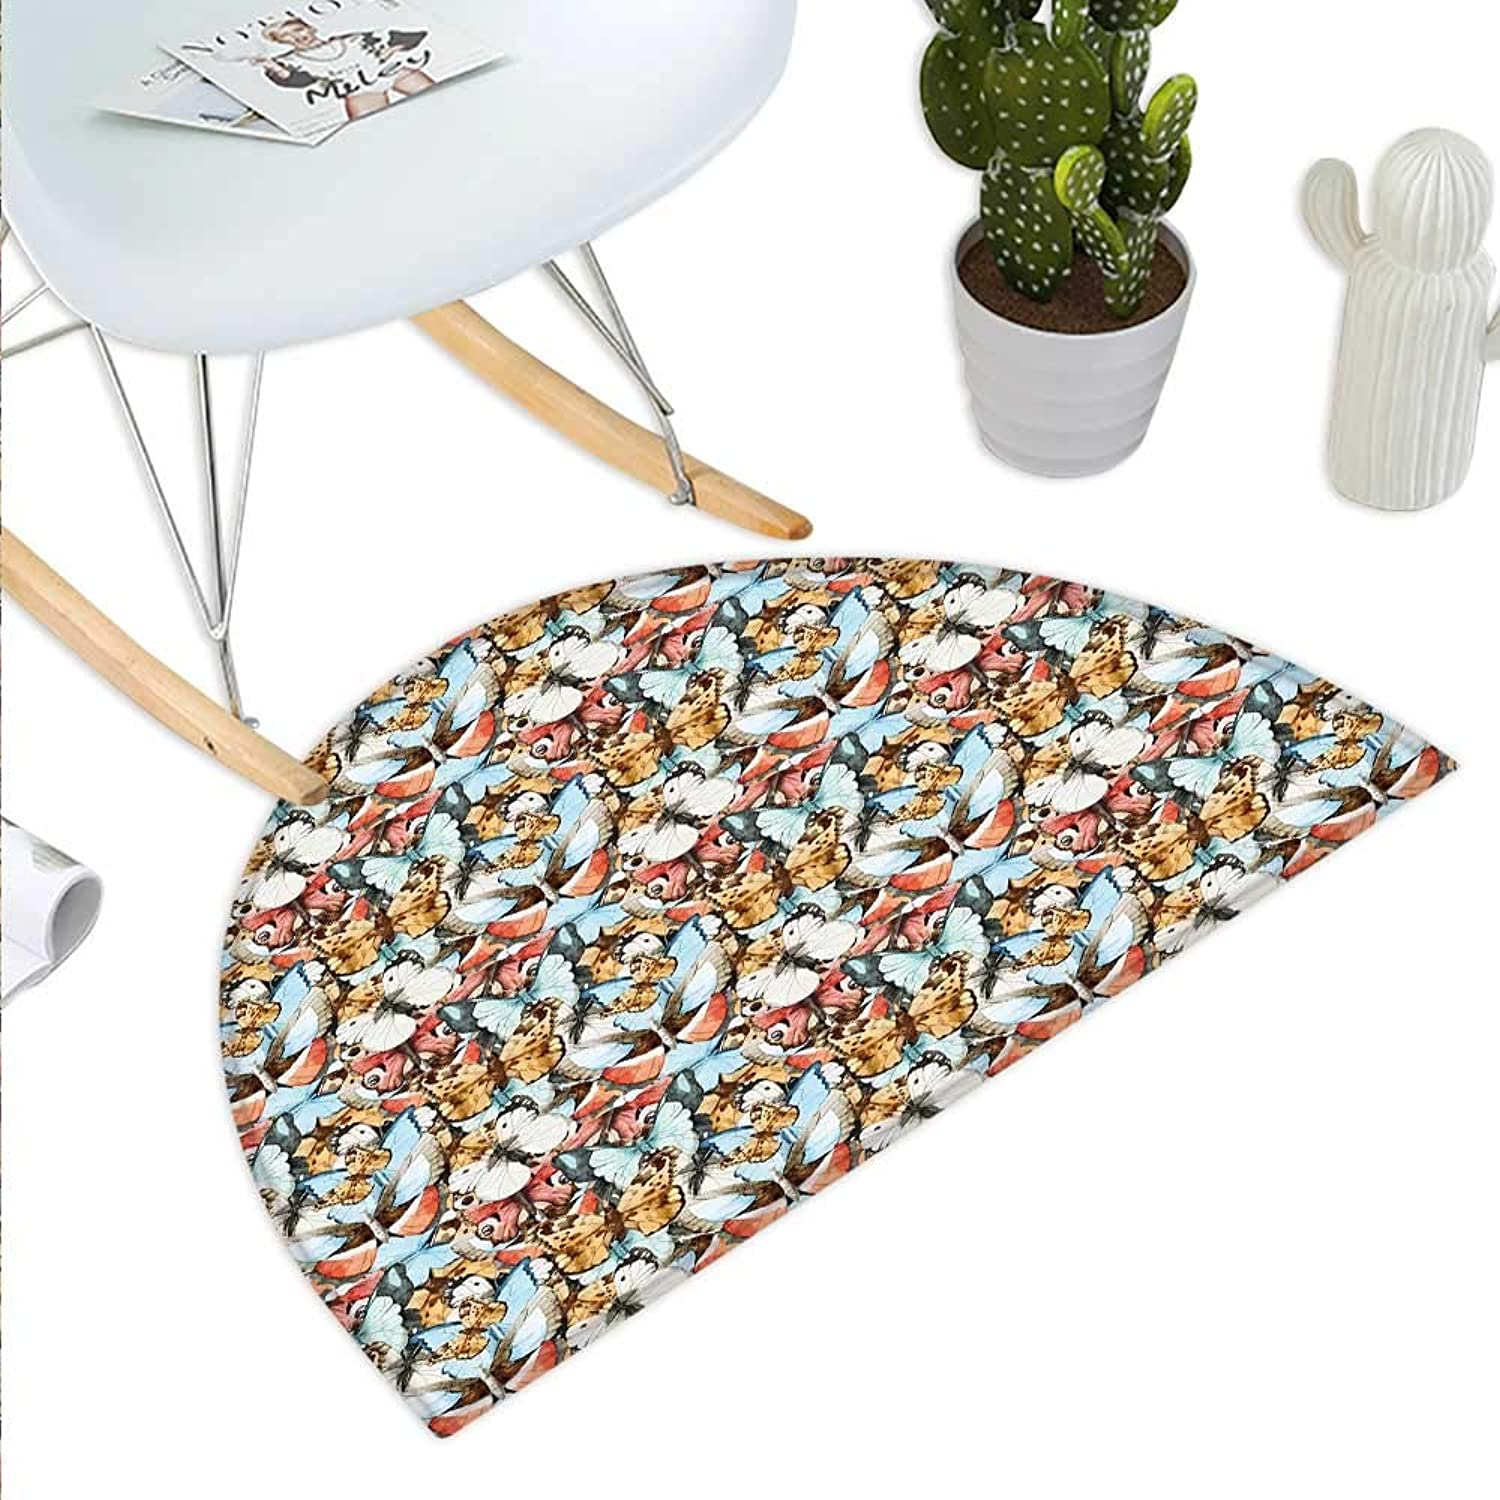 Butterfly Semicircle Doormat Watercolor Butterflies in Various Shapes and Sizes Abstract Fauna Elements Animal Halfmoon doormats H 39.3  xD 59  Multicolor